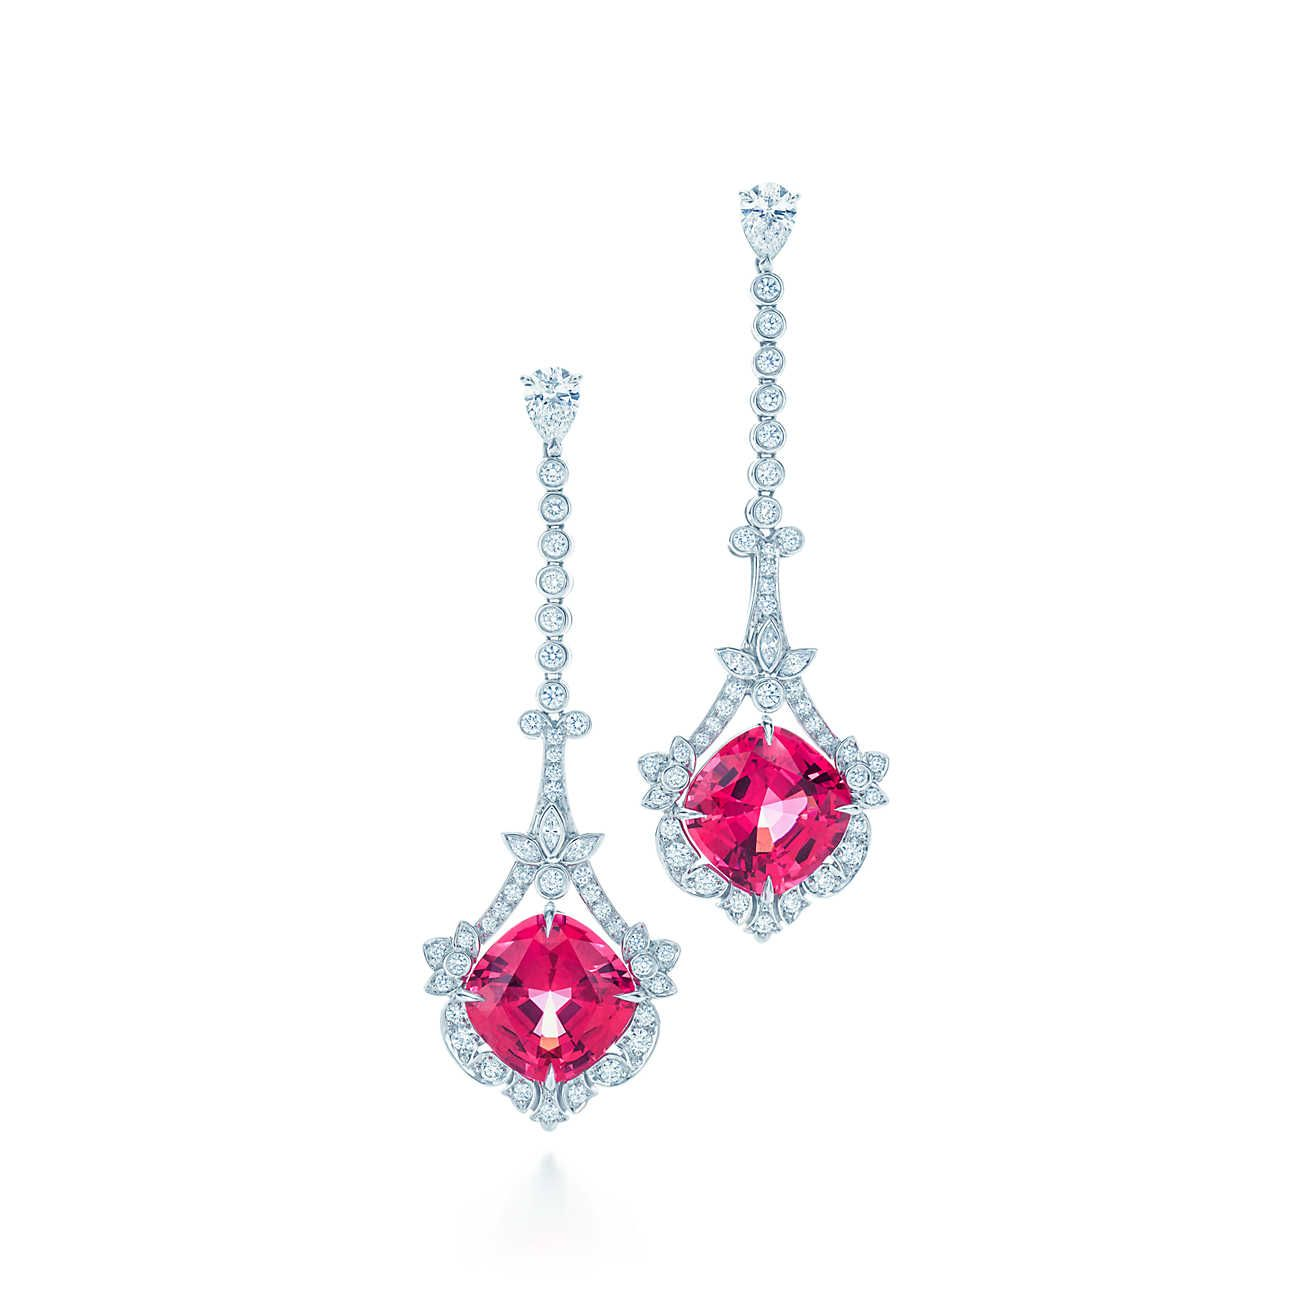 Earrings in platinum with red spinels and diamonds.